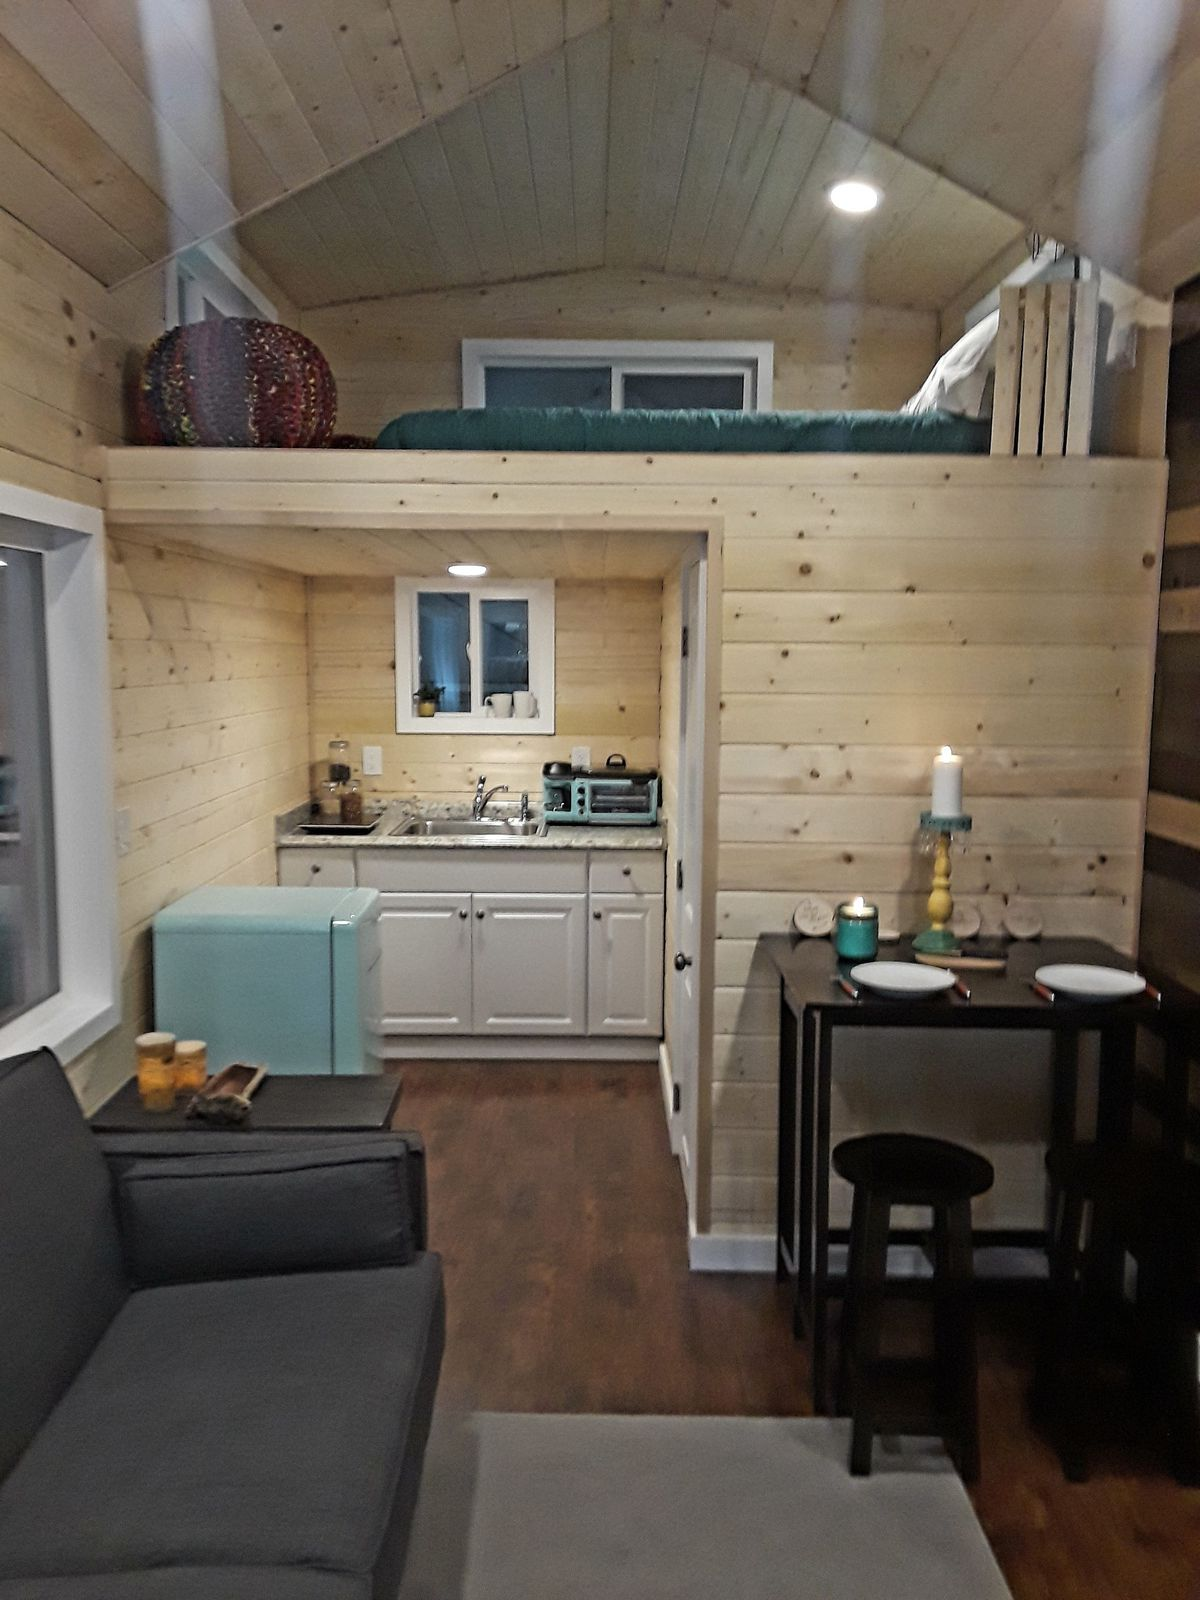 Tiny Home Designs: Seattle Home Show 2018: Some Of The Event's Tiny Home